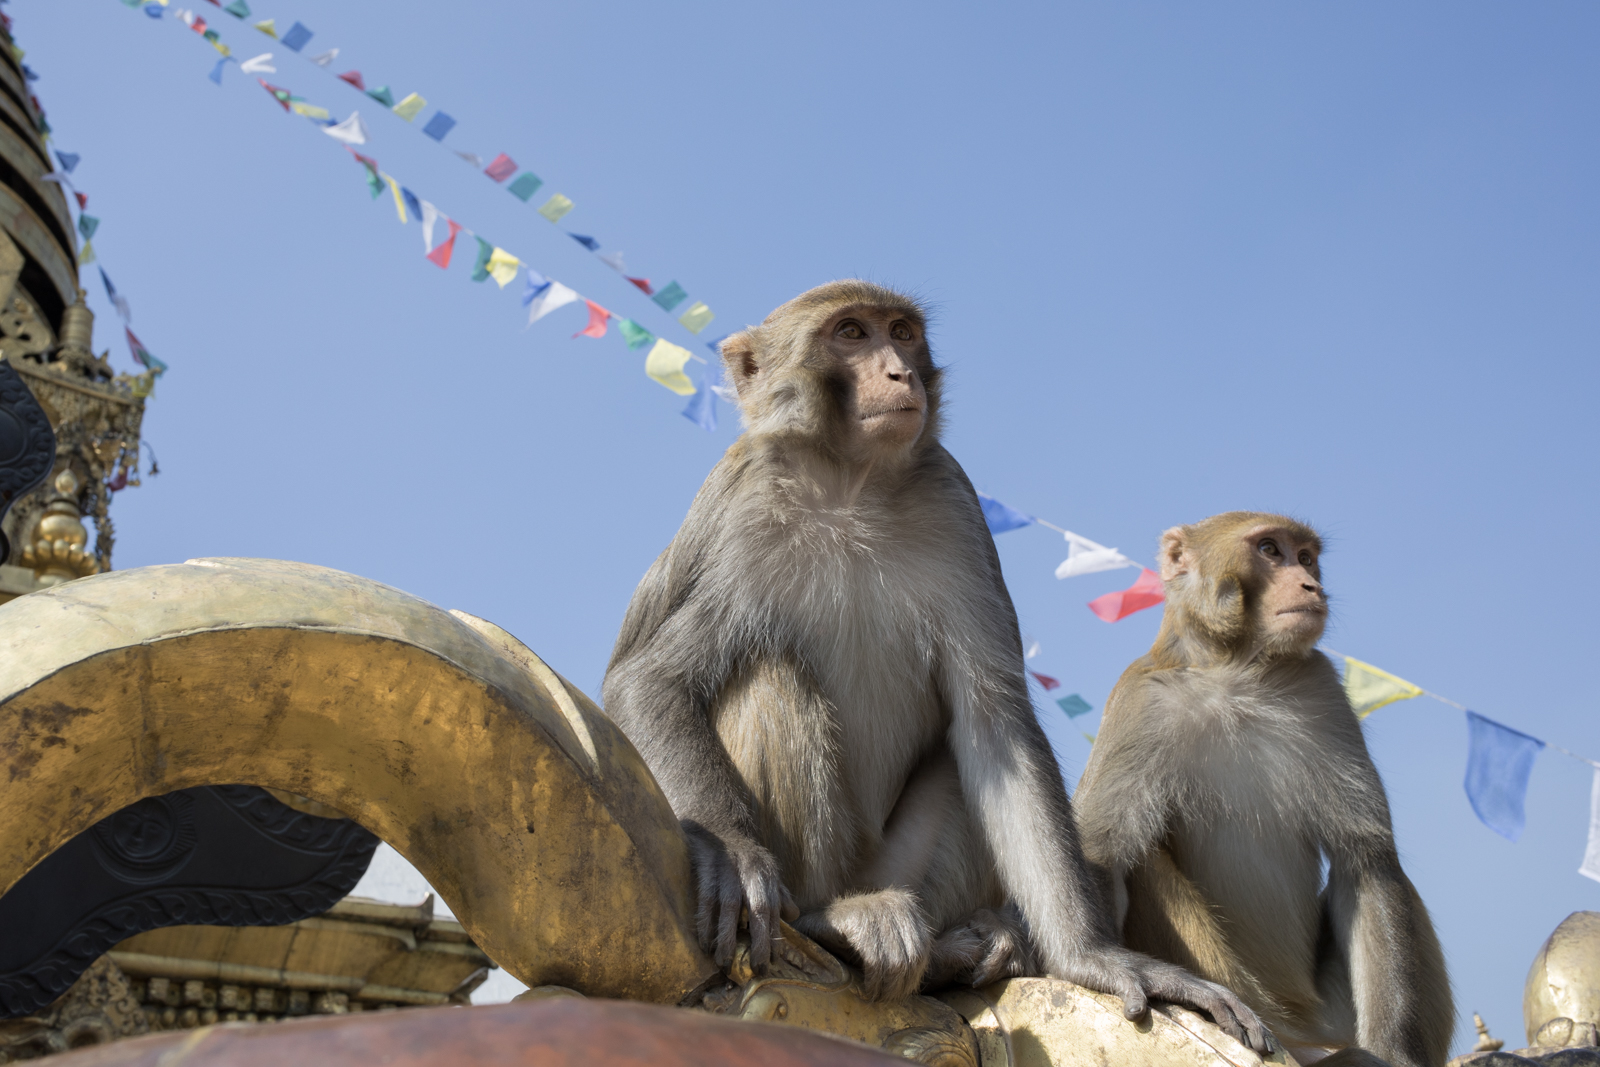 Two macaque monkeys sit on top of a thunderbolt sculpture. Swayambhunath is known by Westerners as the Monkey Temple. Prayer wheels circle the temple which has Buddha's eyes painted on the top level.